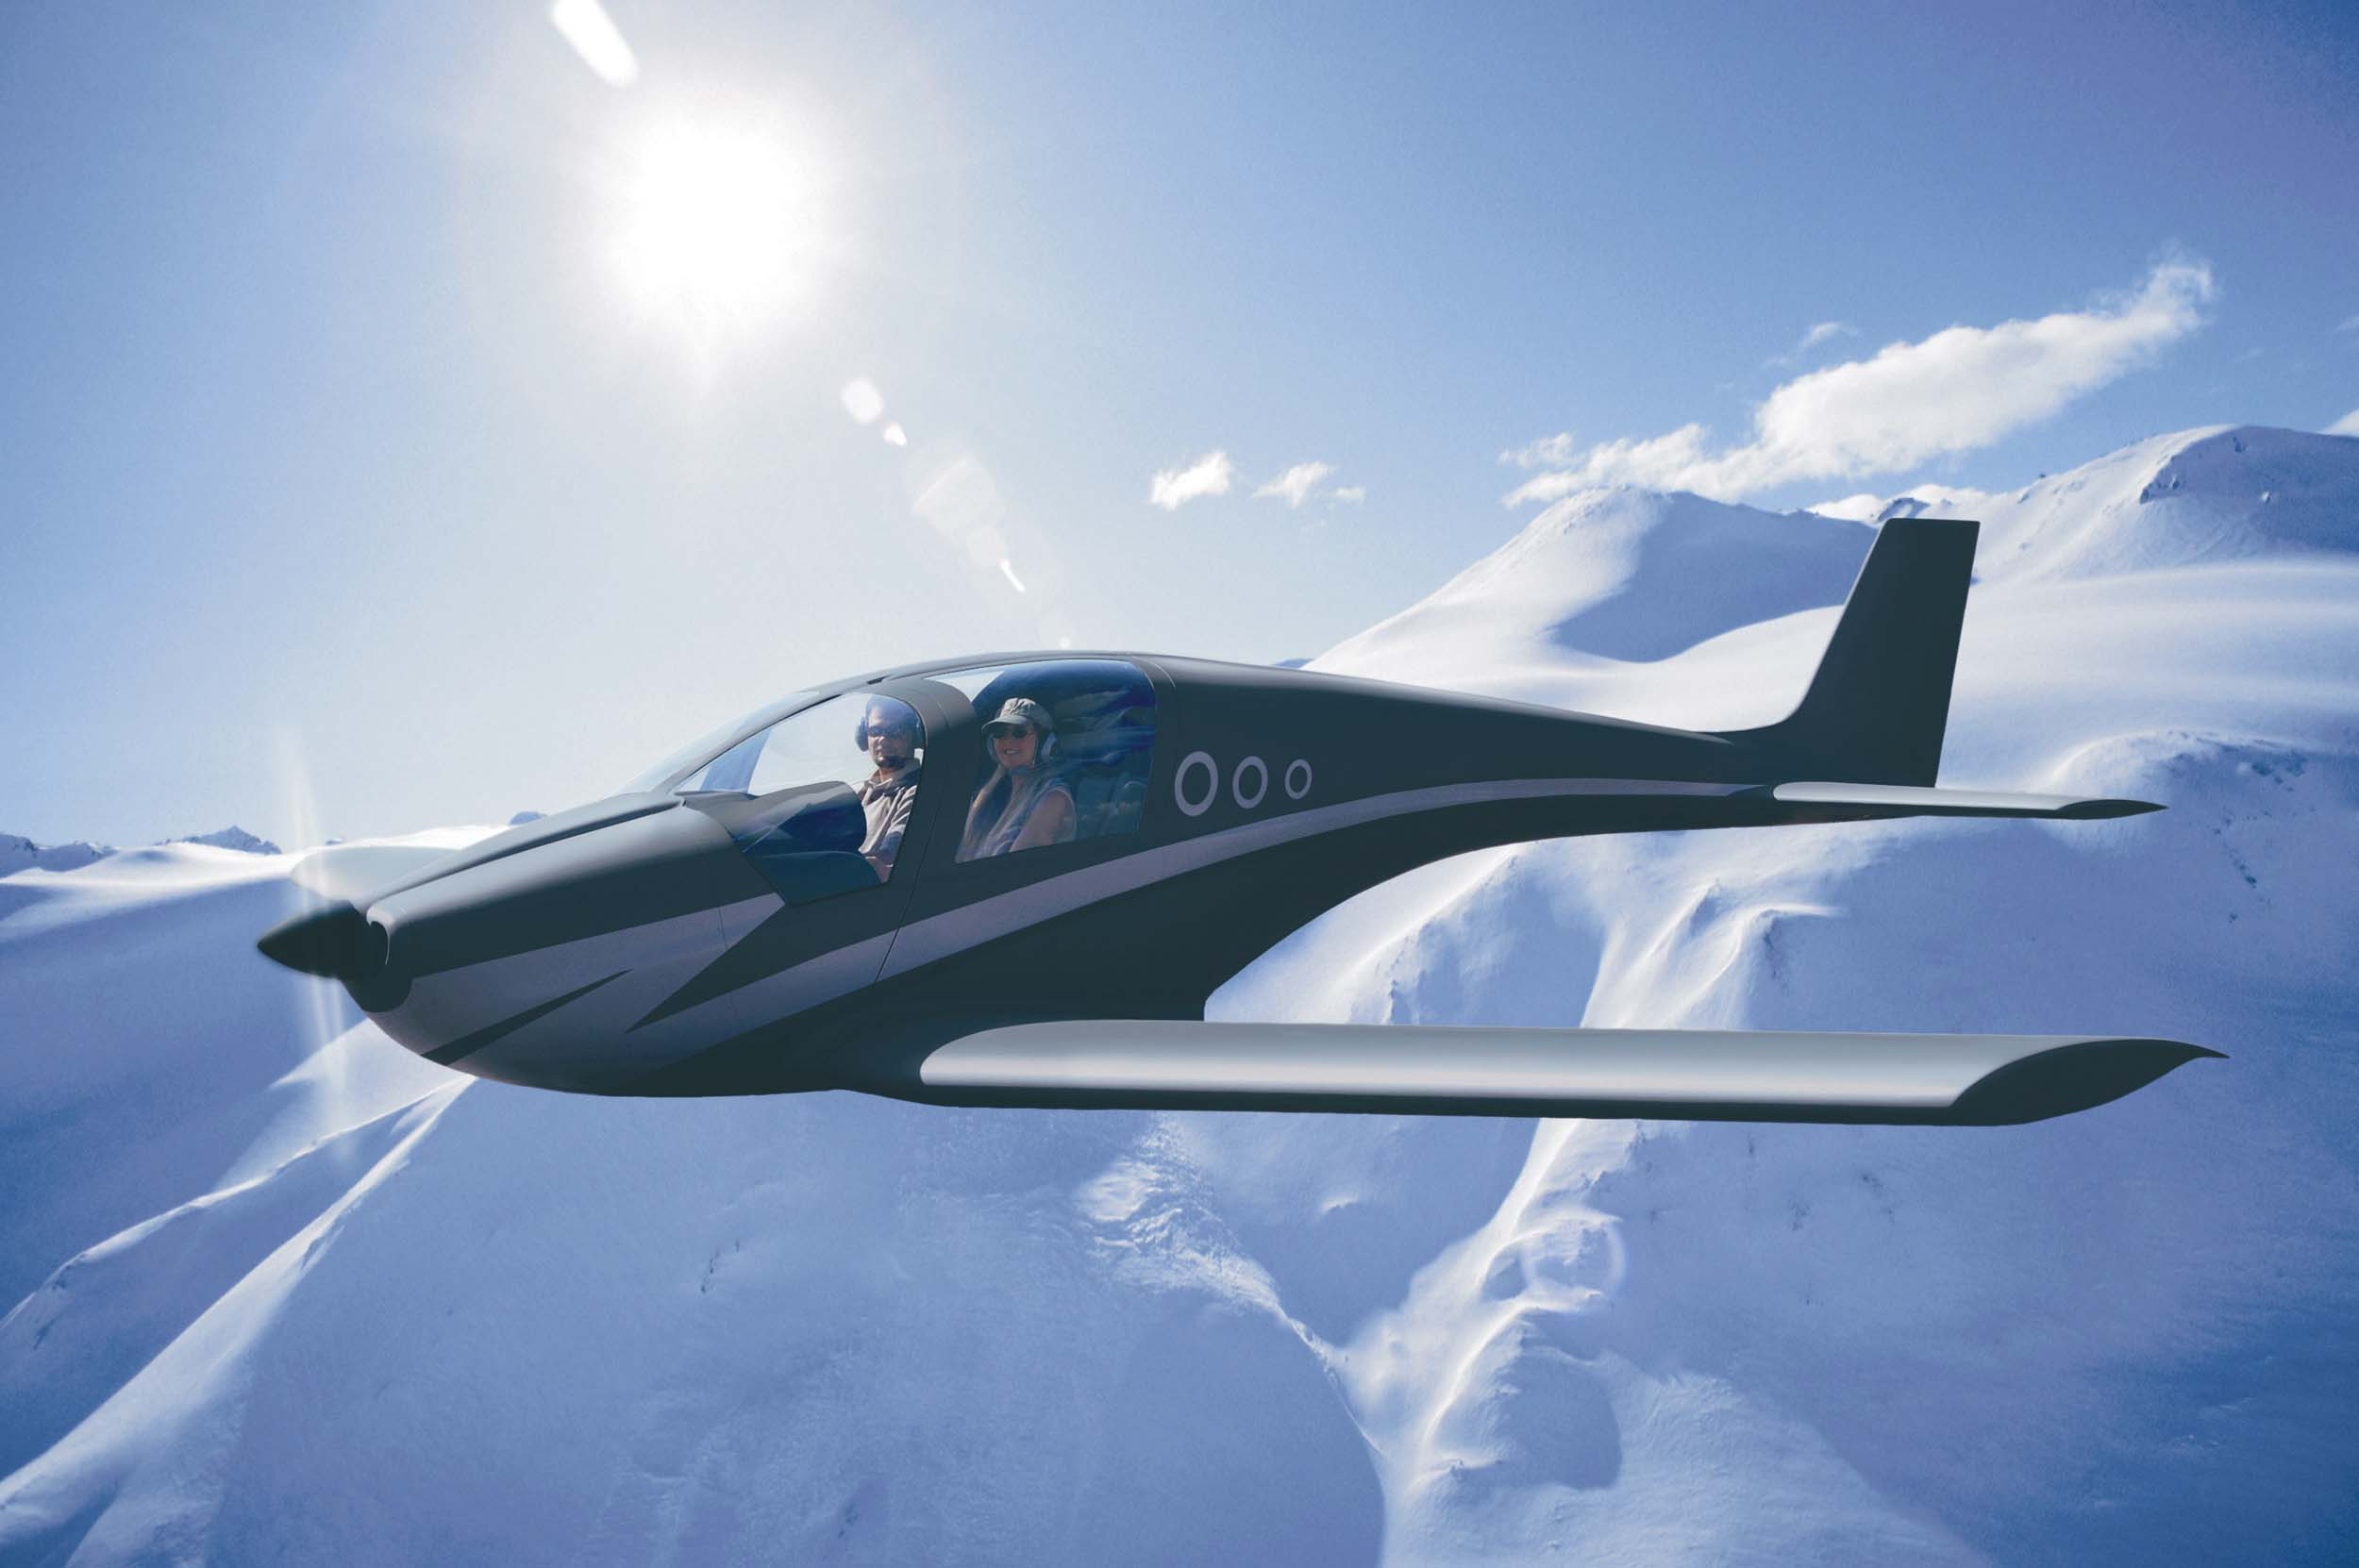 Nexaer—the Latest in Competition for Light Sport Airplane Customers